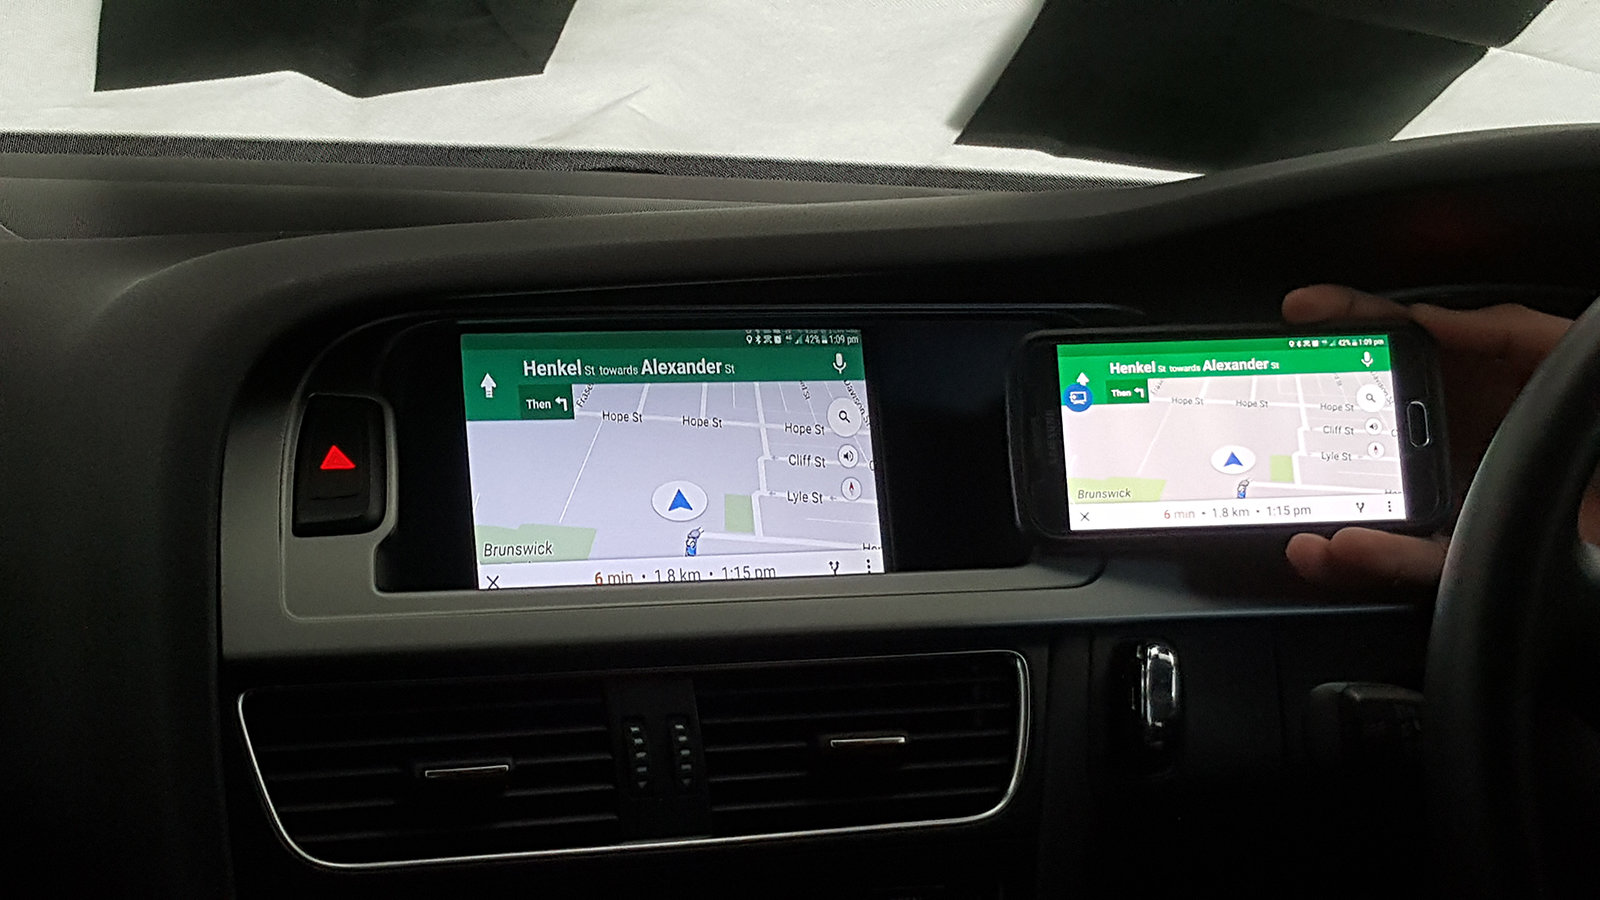 audi 3g mmi hd android mirrorlink apple airplay iphone map apple map install kit ebay. Black Bedroom Furniture Sets. Home Design Ideas